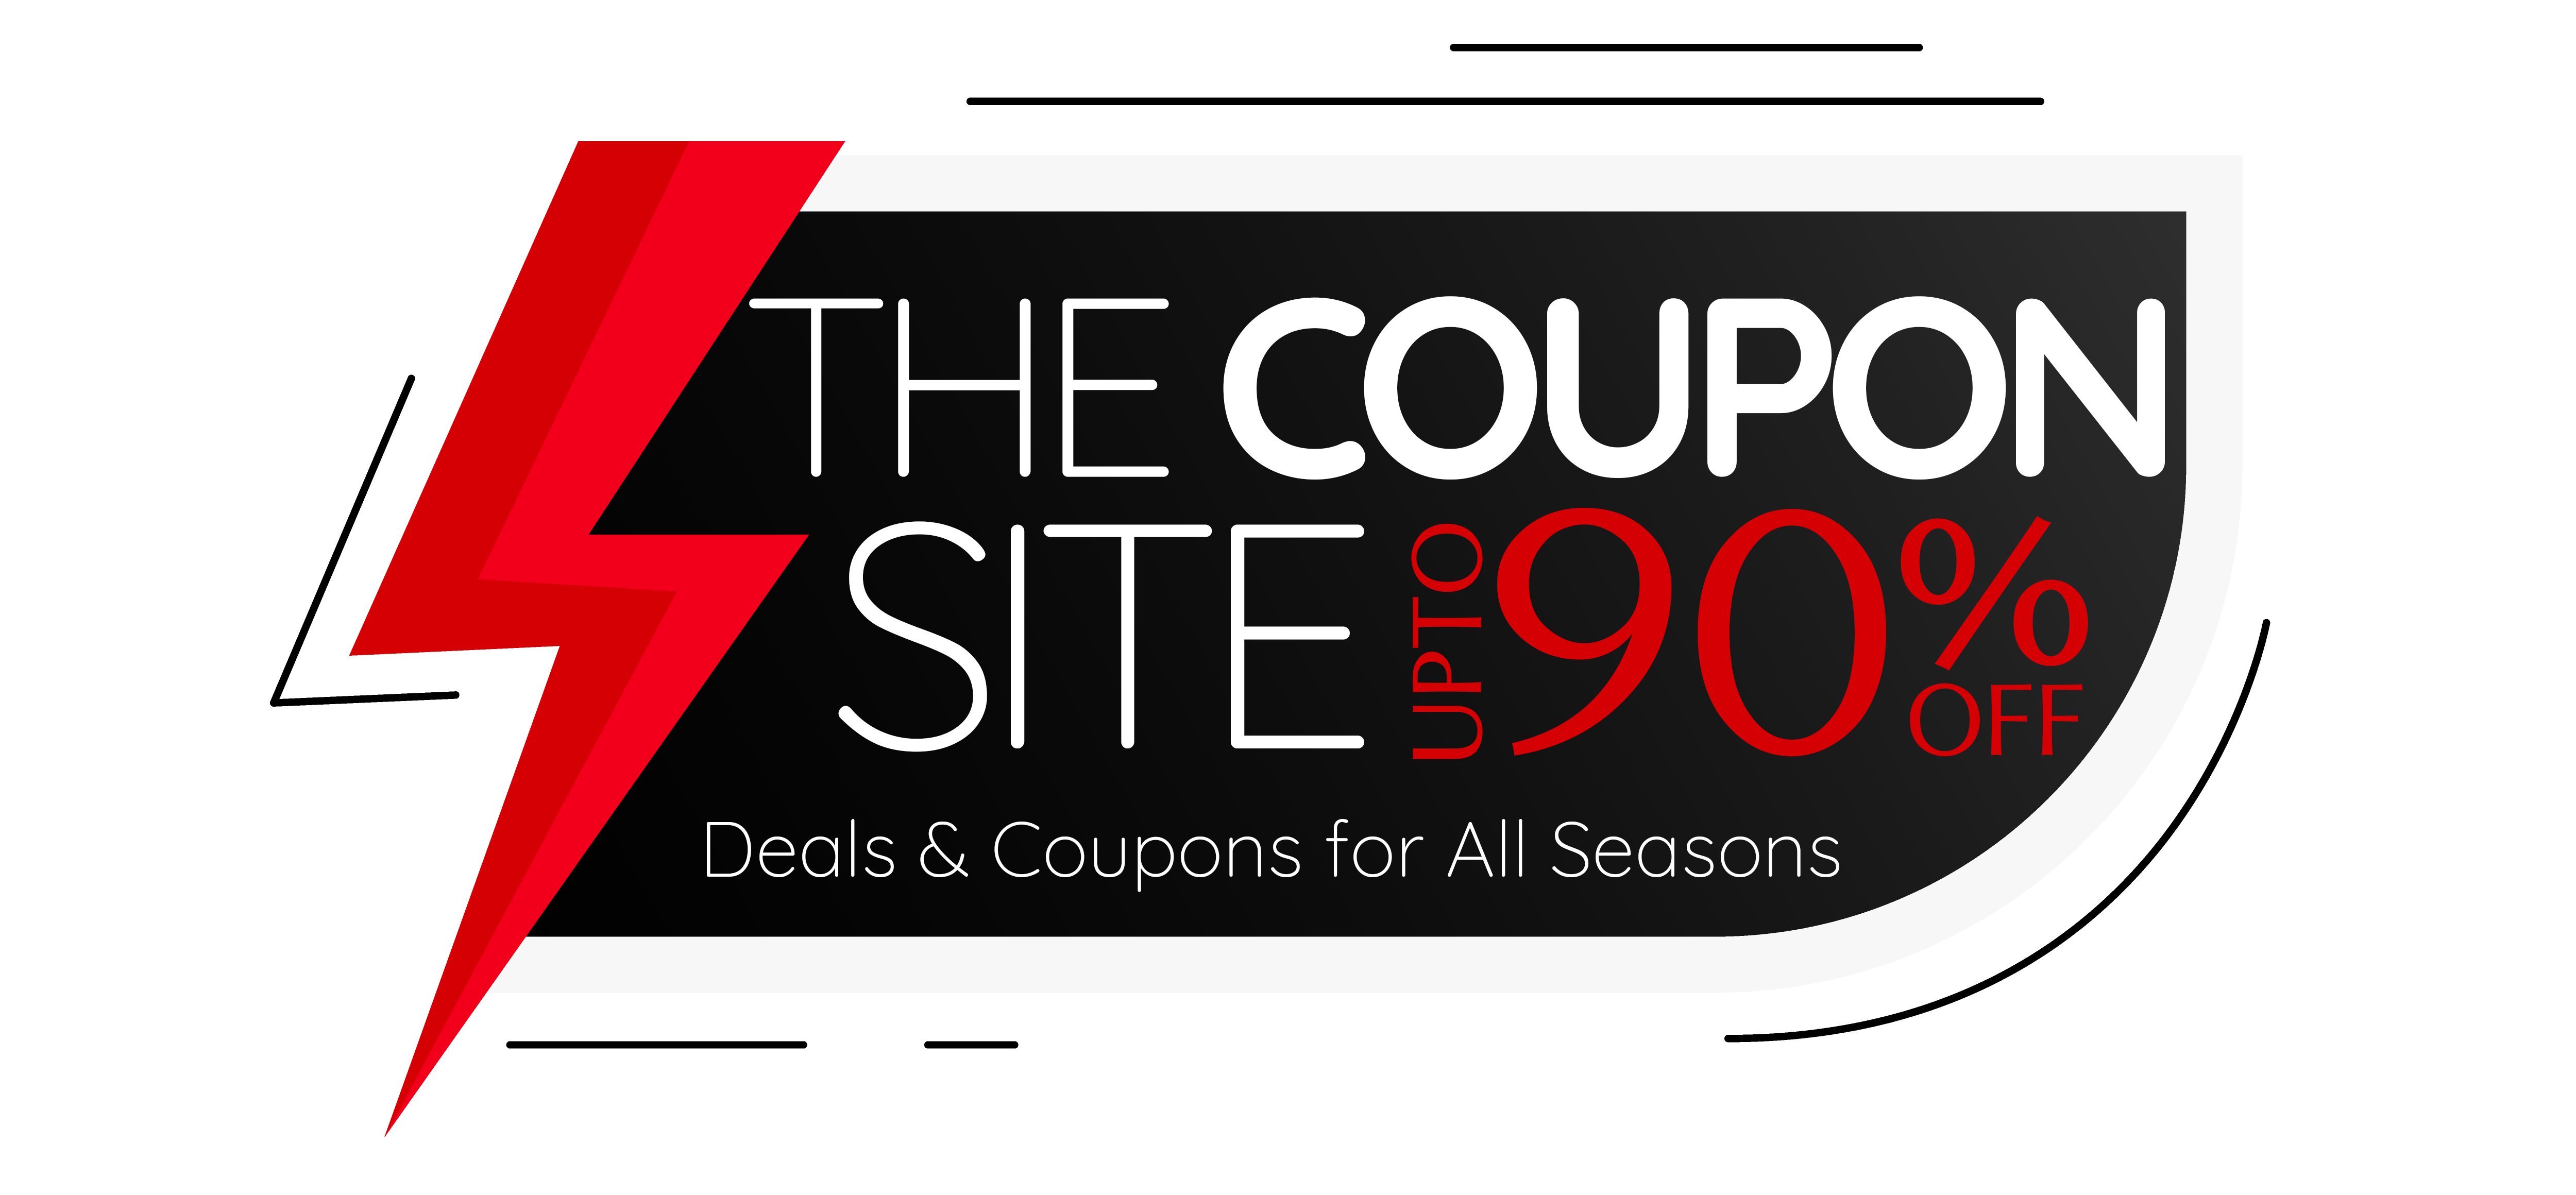 The Coupon Site